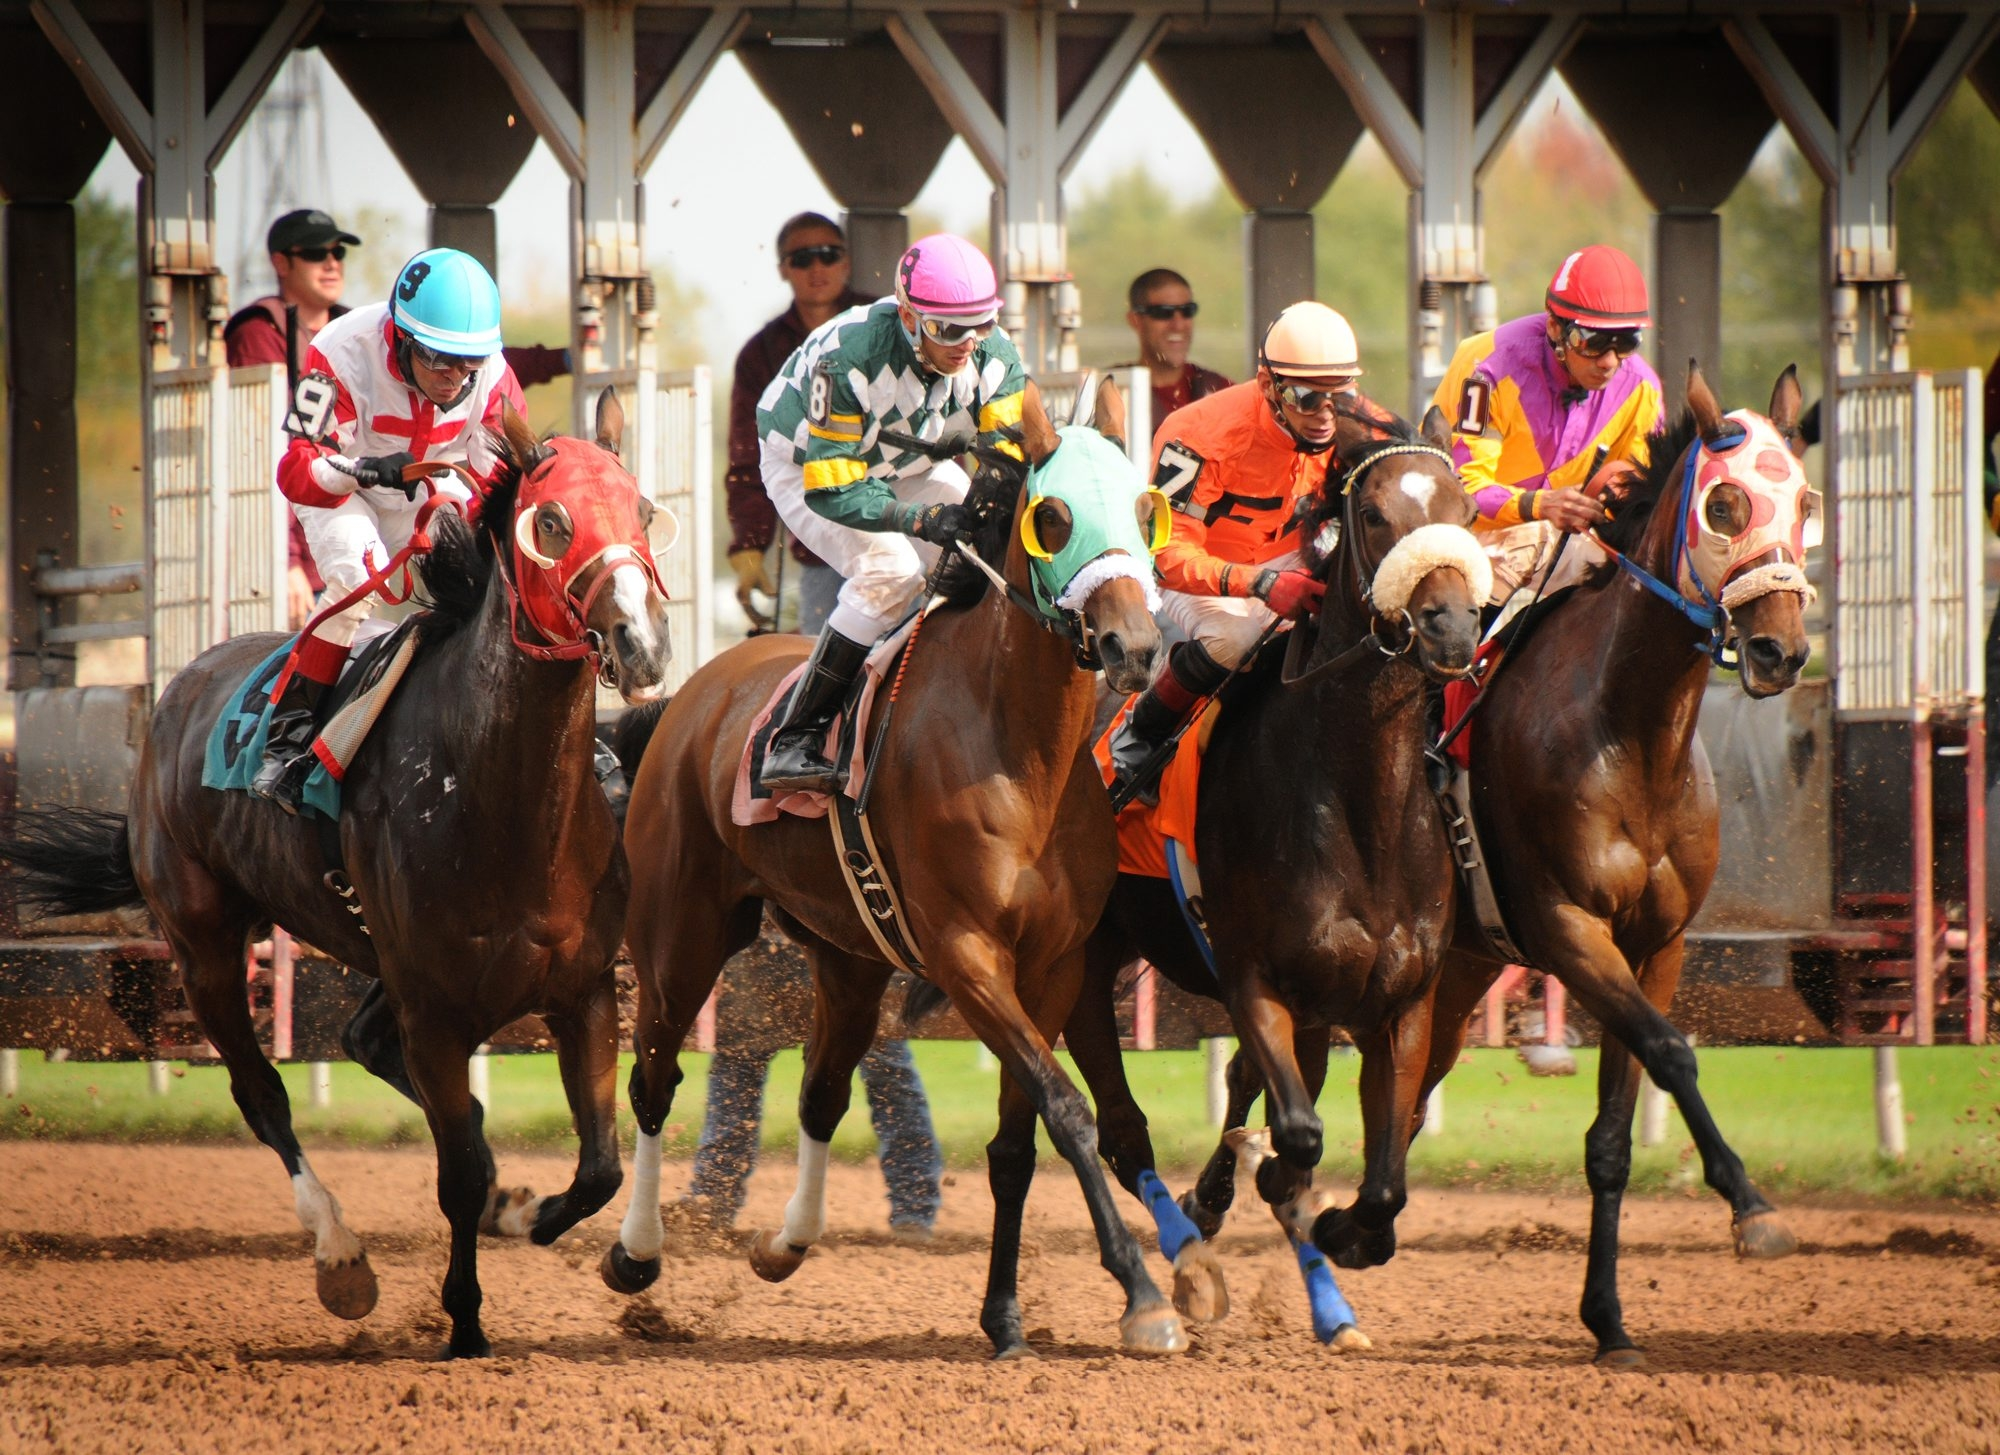 The Finger Lakes Gaming & Racetrack in Farmington offers live racing, slots and restaurants for an action-packed getaway that's not too far from home.